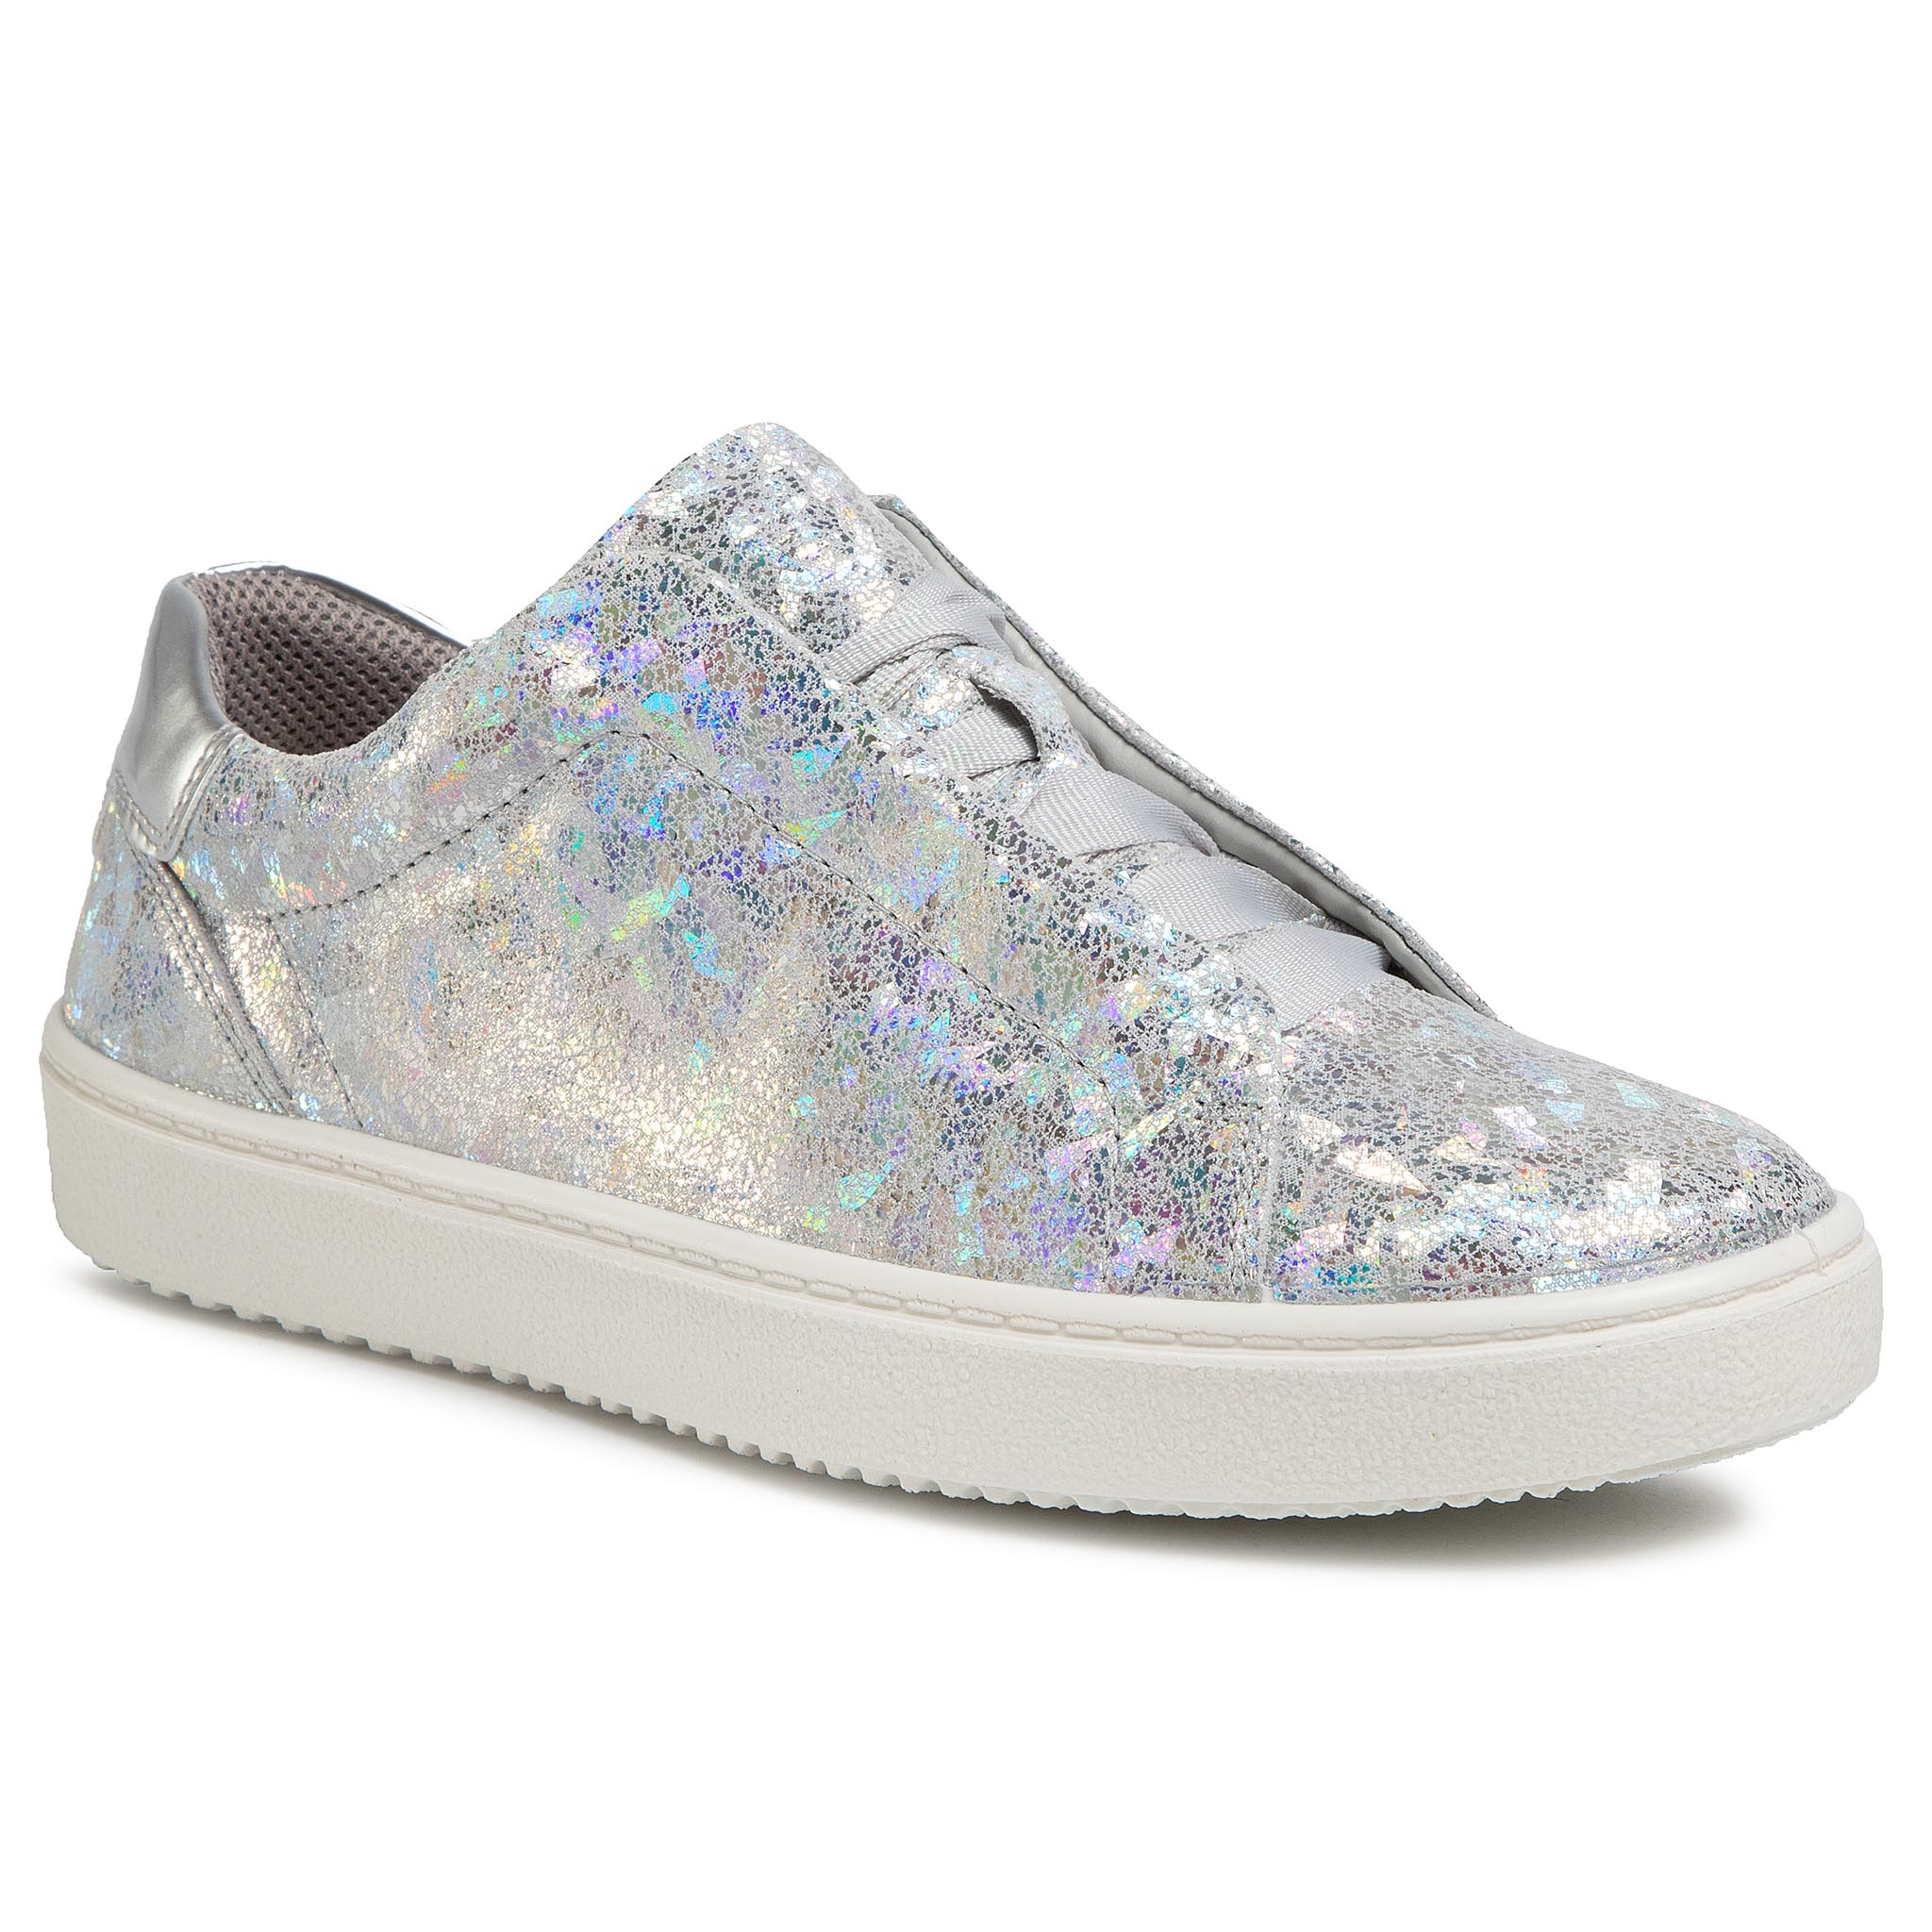 Sneakers SUPERFIT - 0-606496-84 D Metallic Sillber